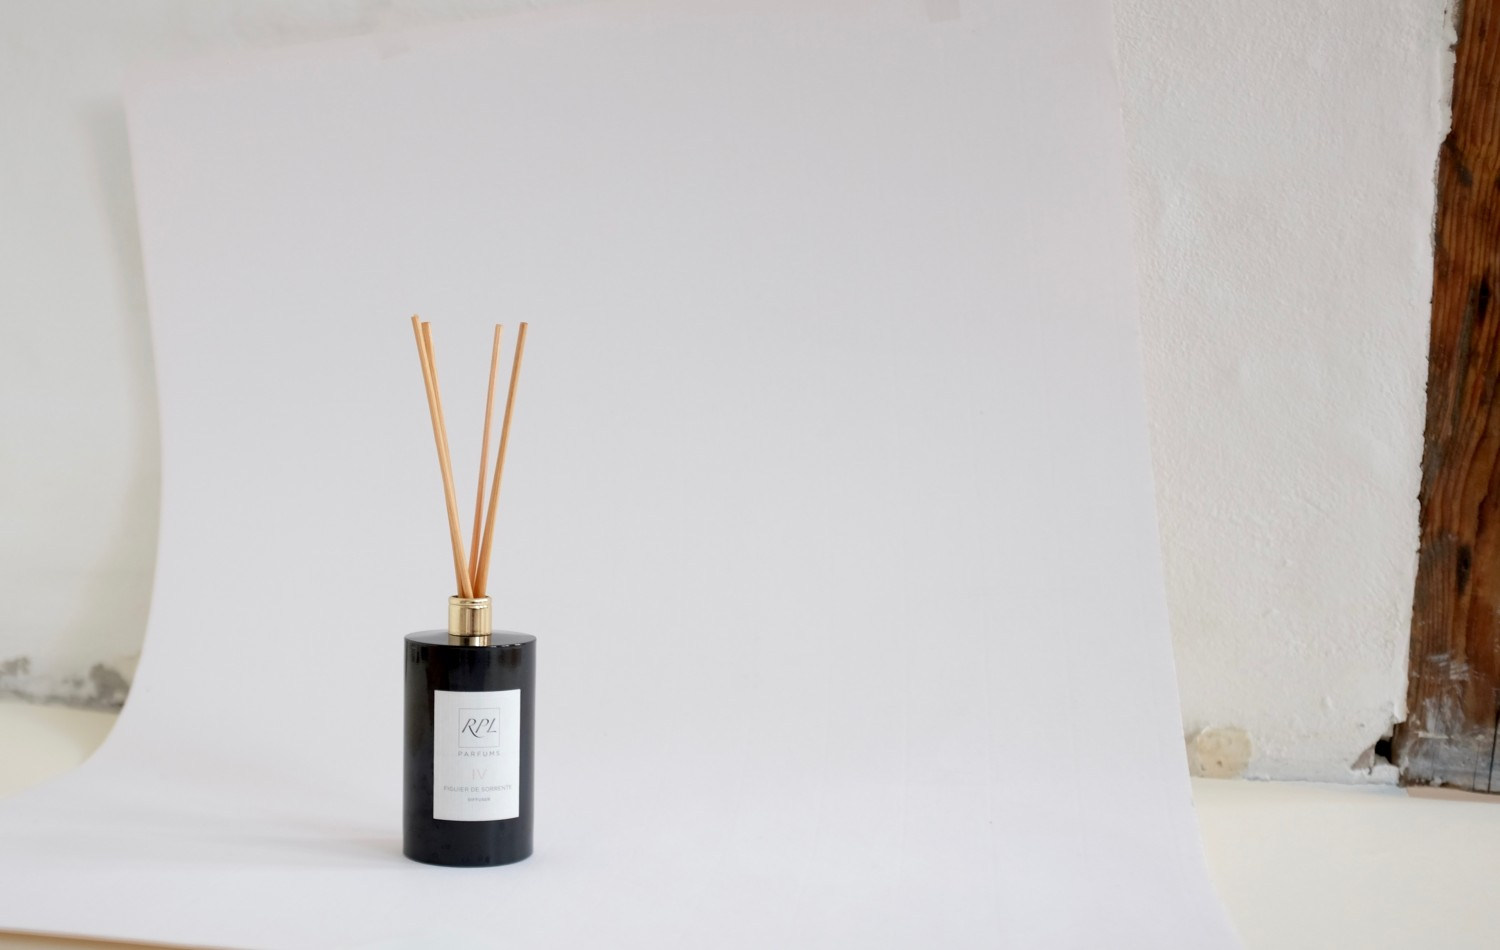 rpl_mansion_scented_diffuser